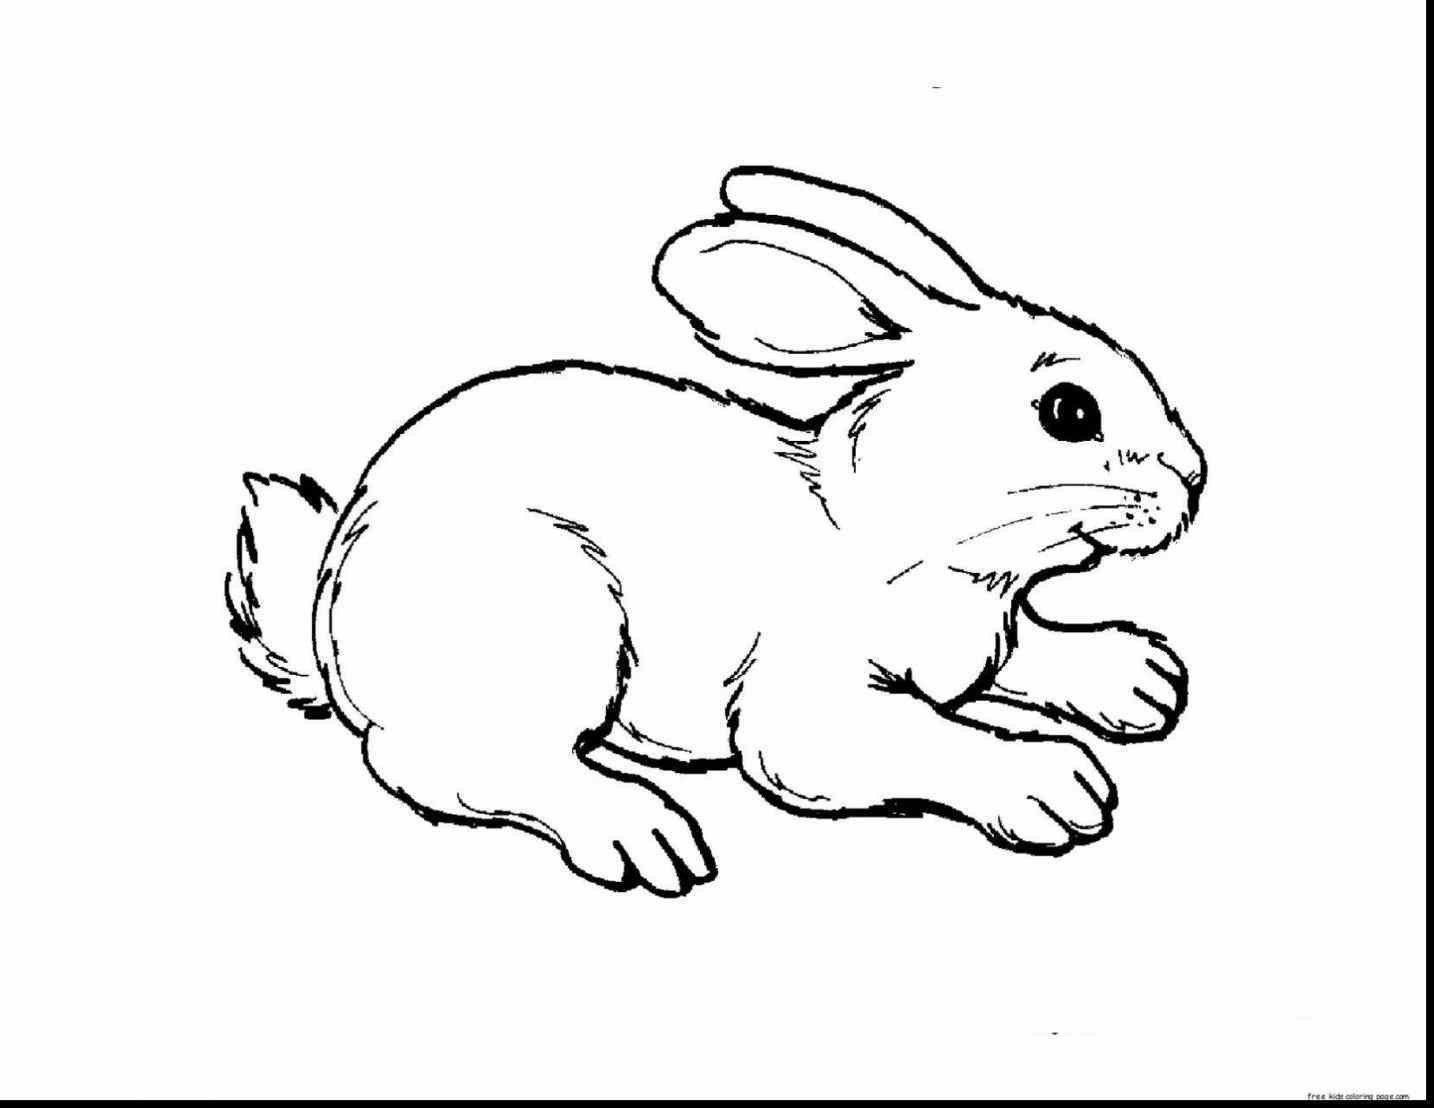 Bunny clipart black and white. Rabbit drawing also bunnies